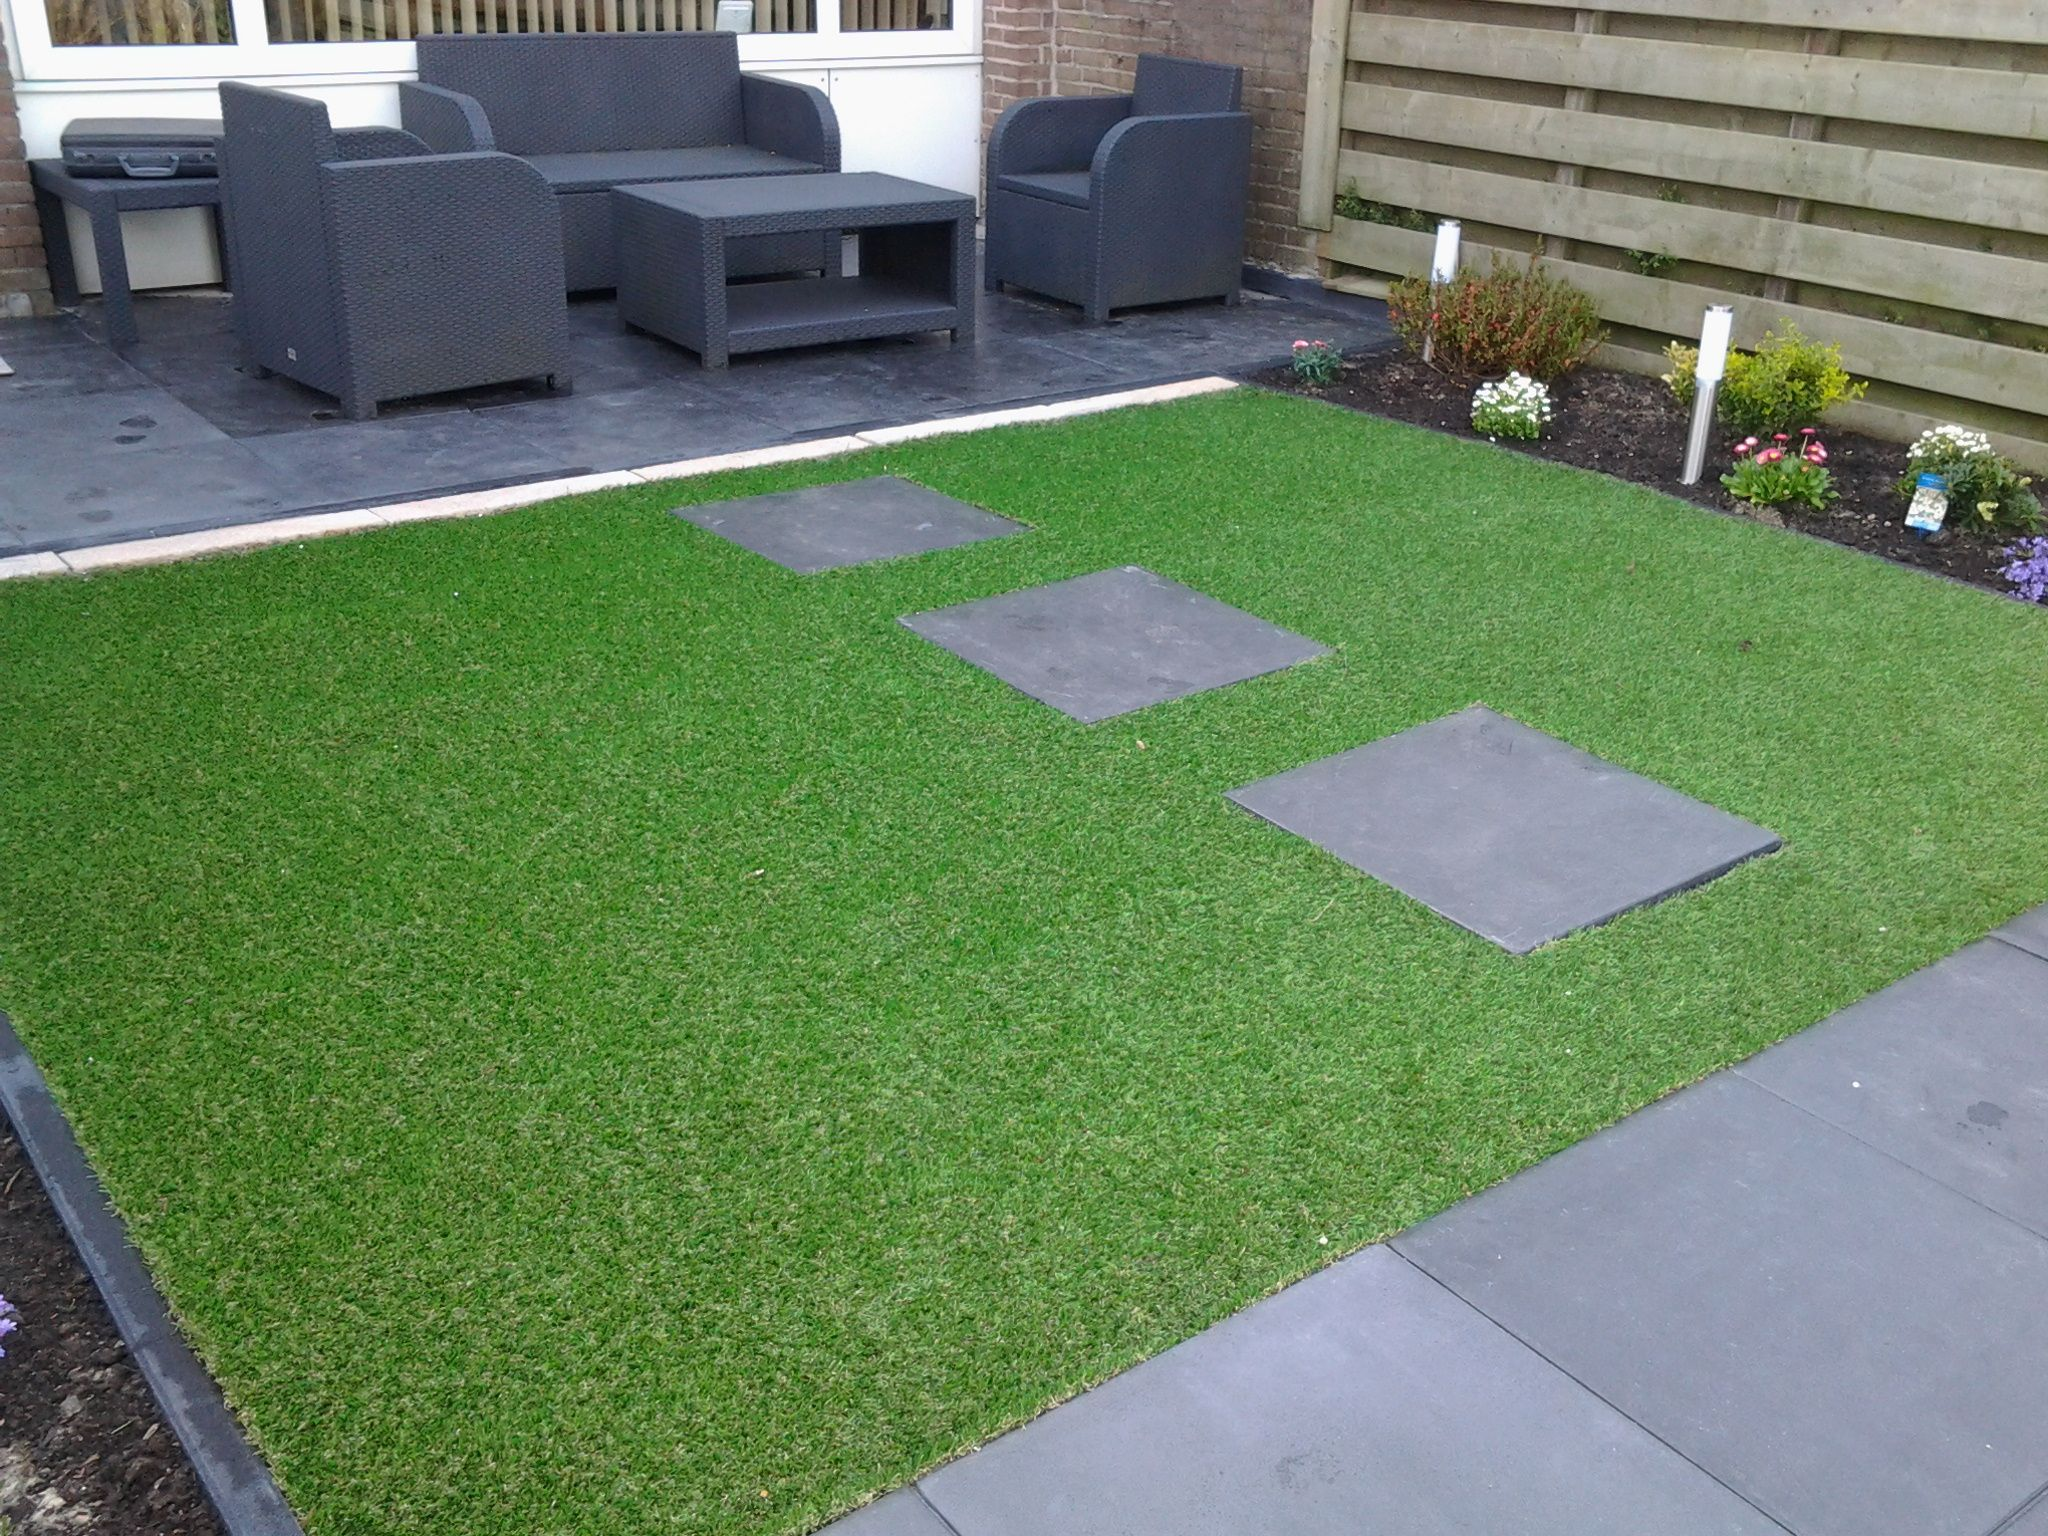 Artificial turf next to pavers For the Home